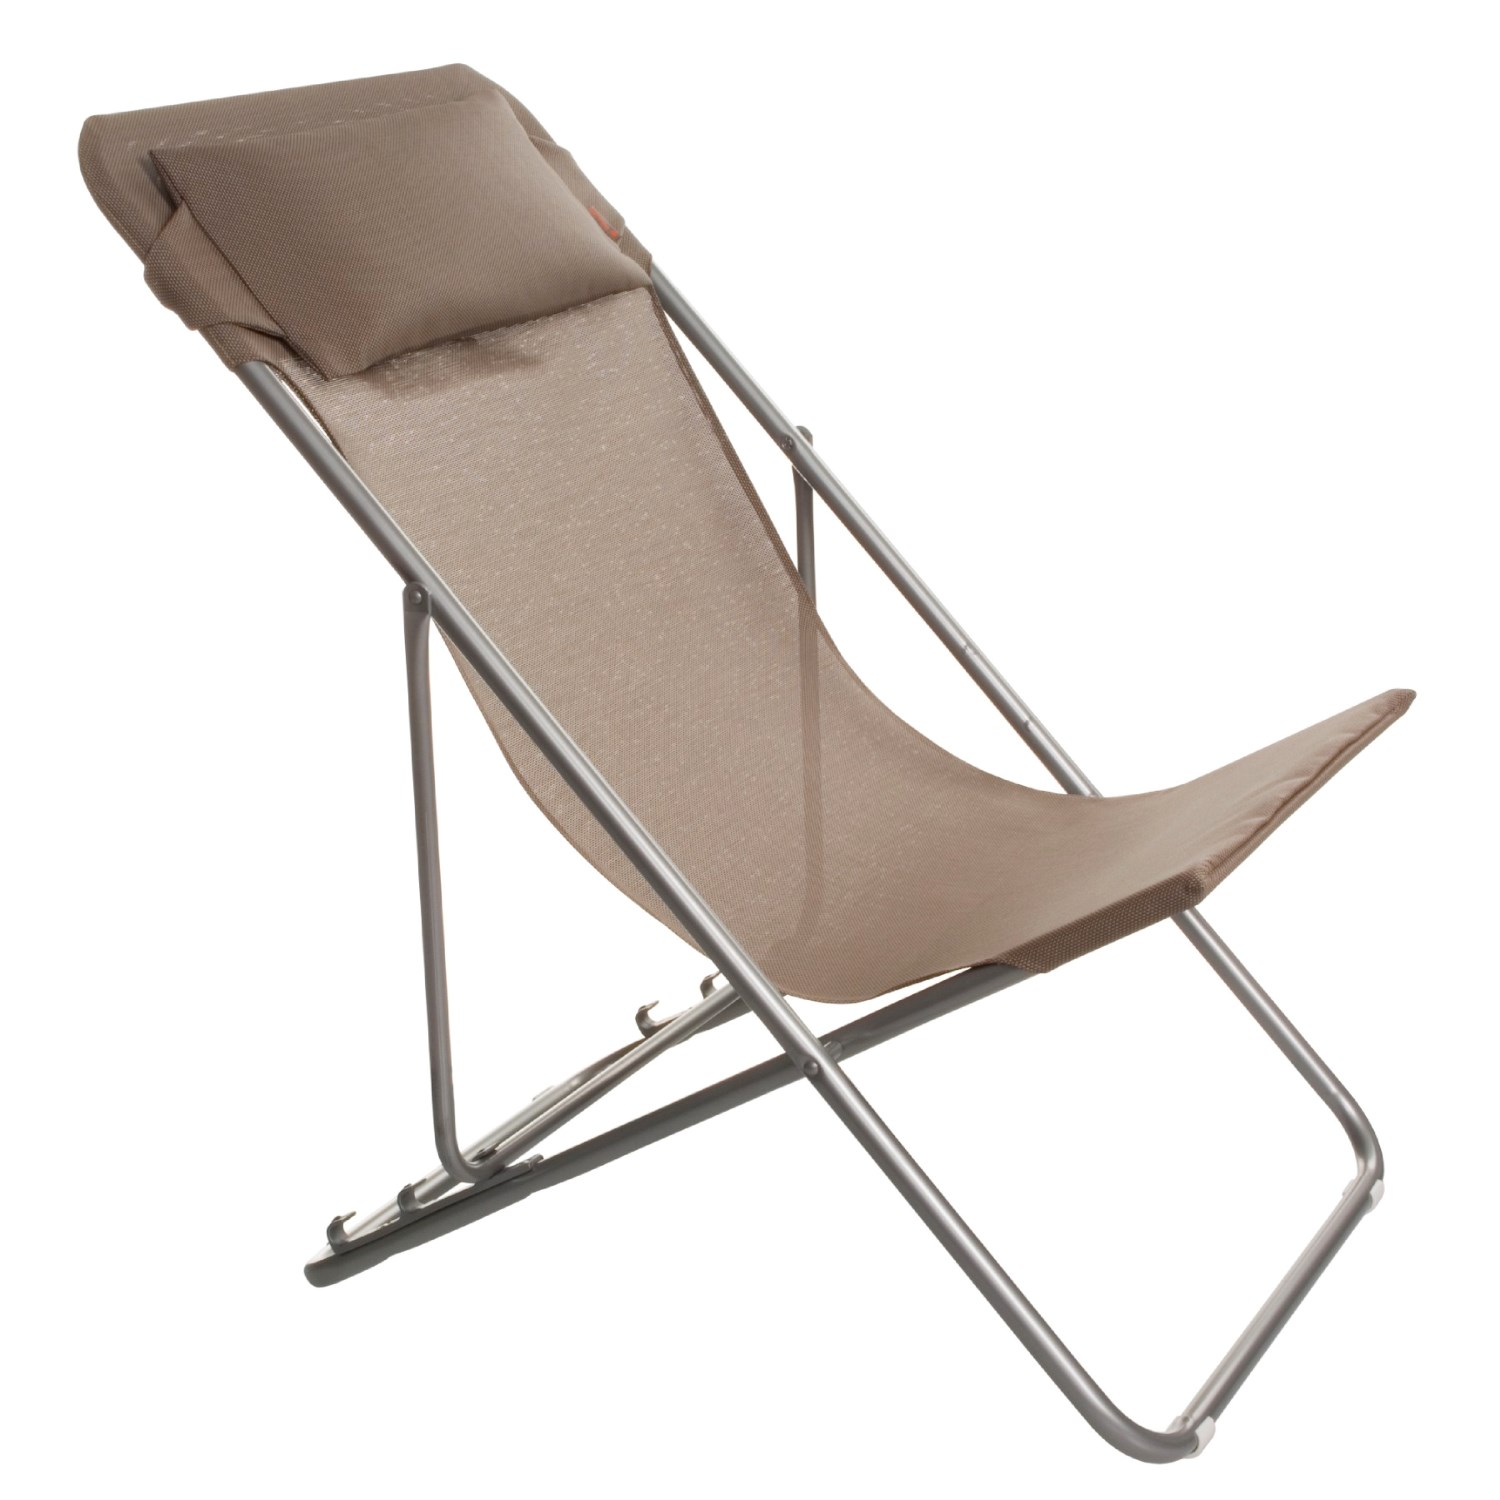 Transatube lafuma - Chaise longue lafuma ...